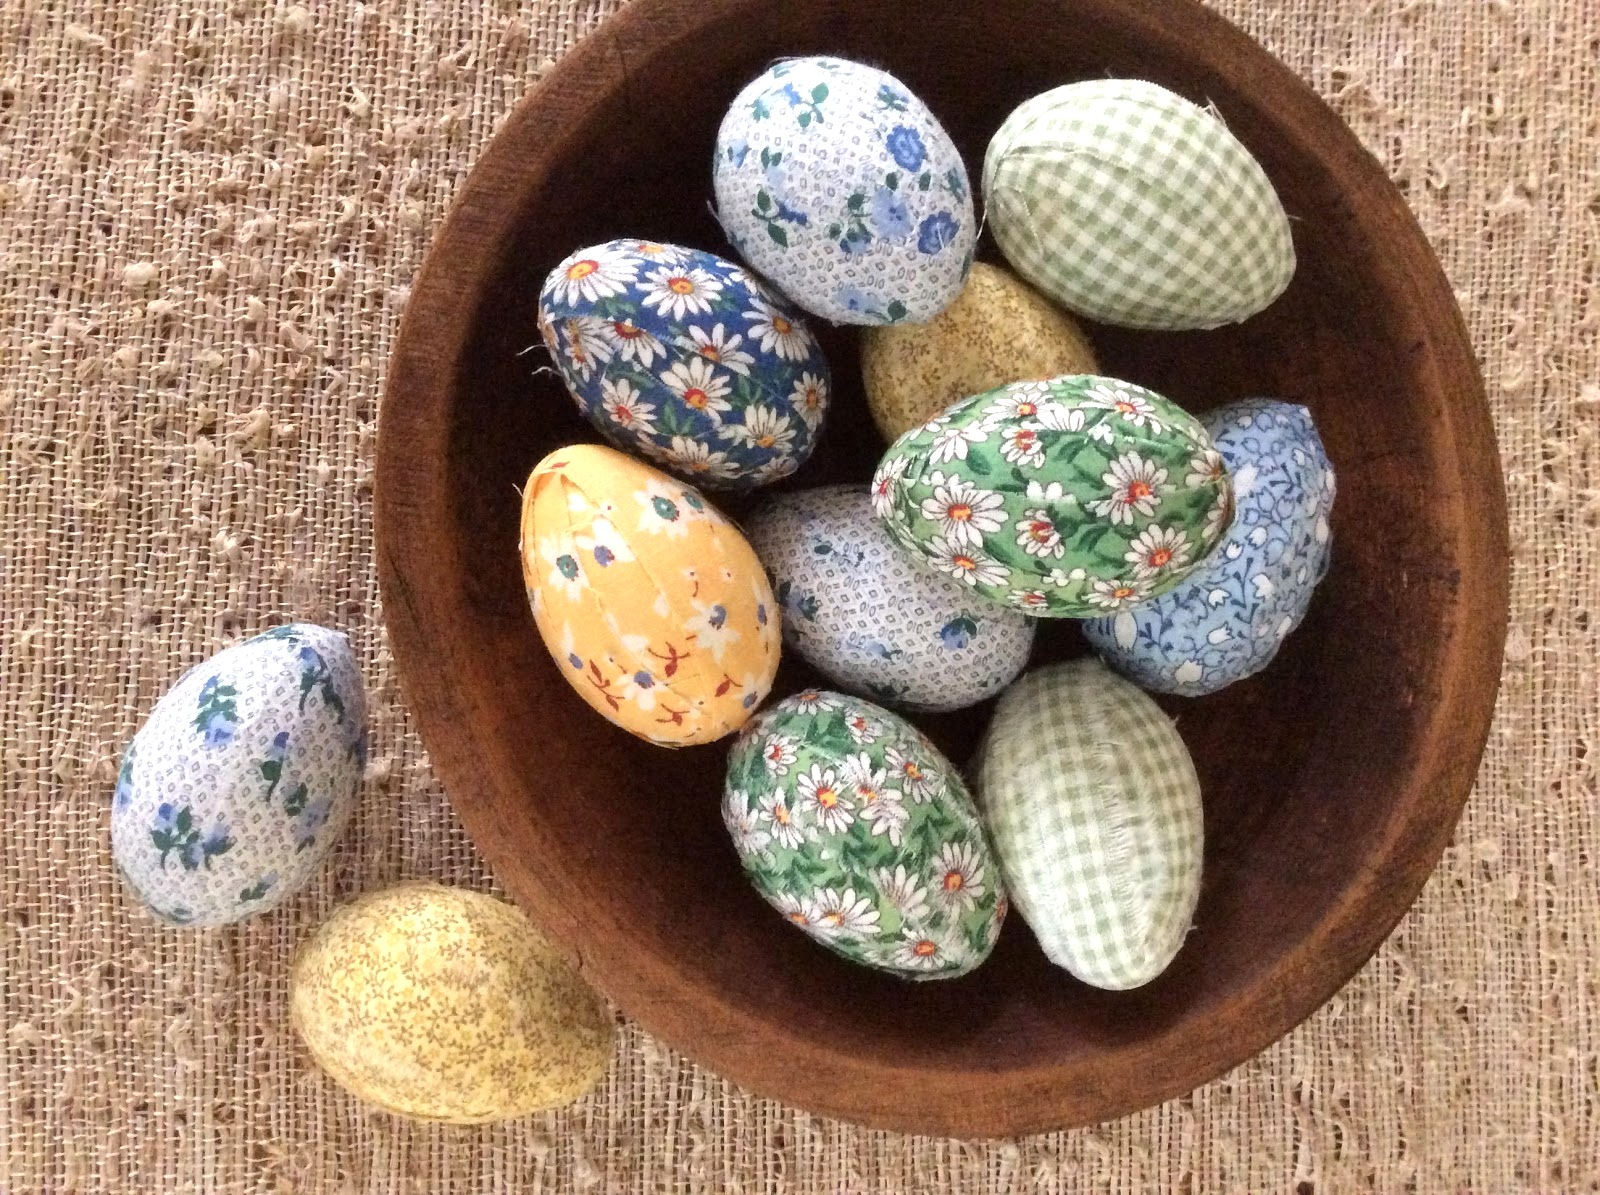 Fabric-wrapped Easter eggs by Fresh Vintage by Lisa S, featured on DIY Salvaged Junk Projects 513 on Funky Junk!